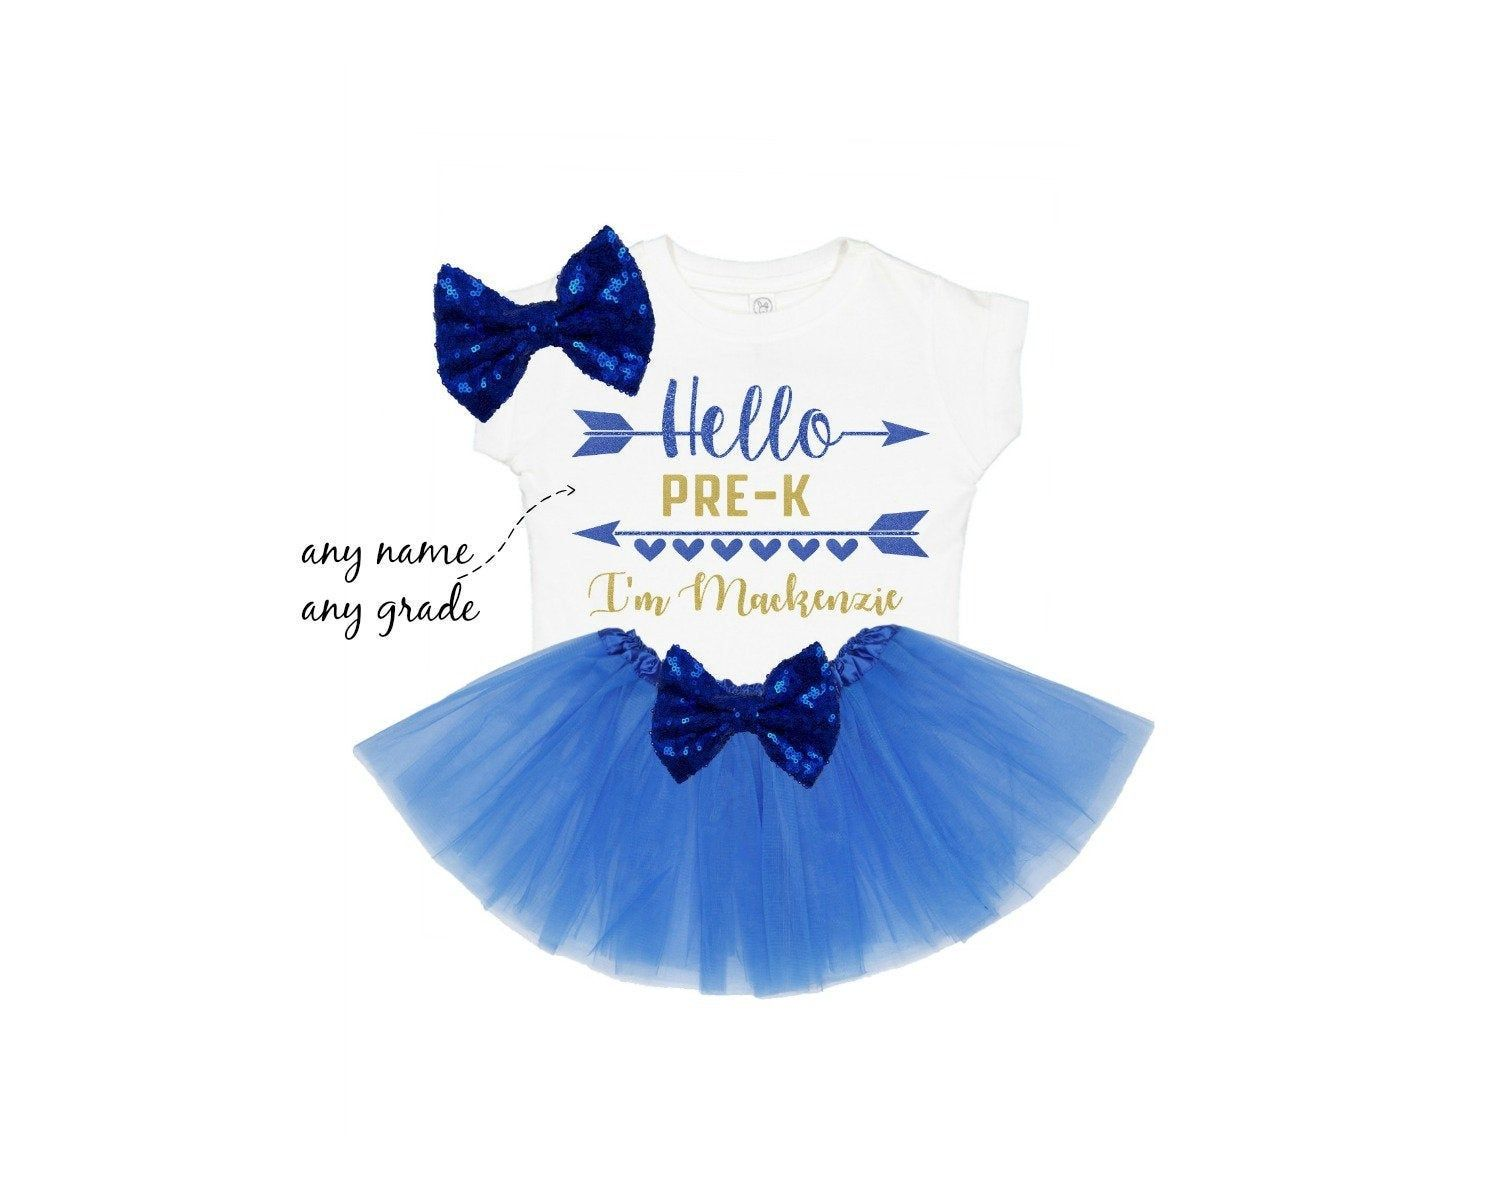 Hello pre k shirt | first day of school outfit | back to school clothes | personalized 1st day of school tee | hello any grade and name #firstdayofschooloutfits